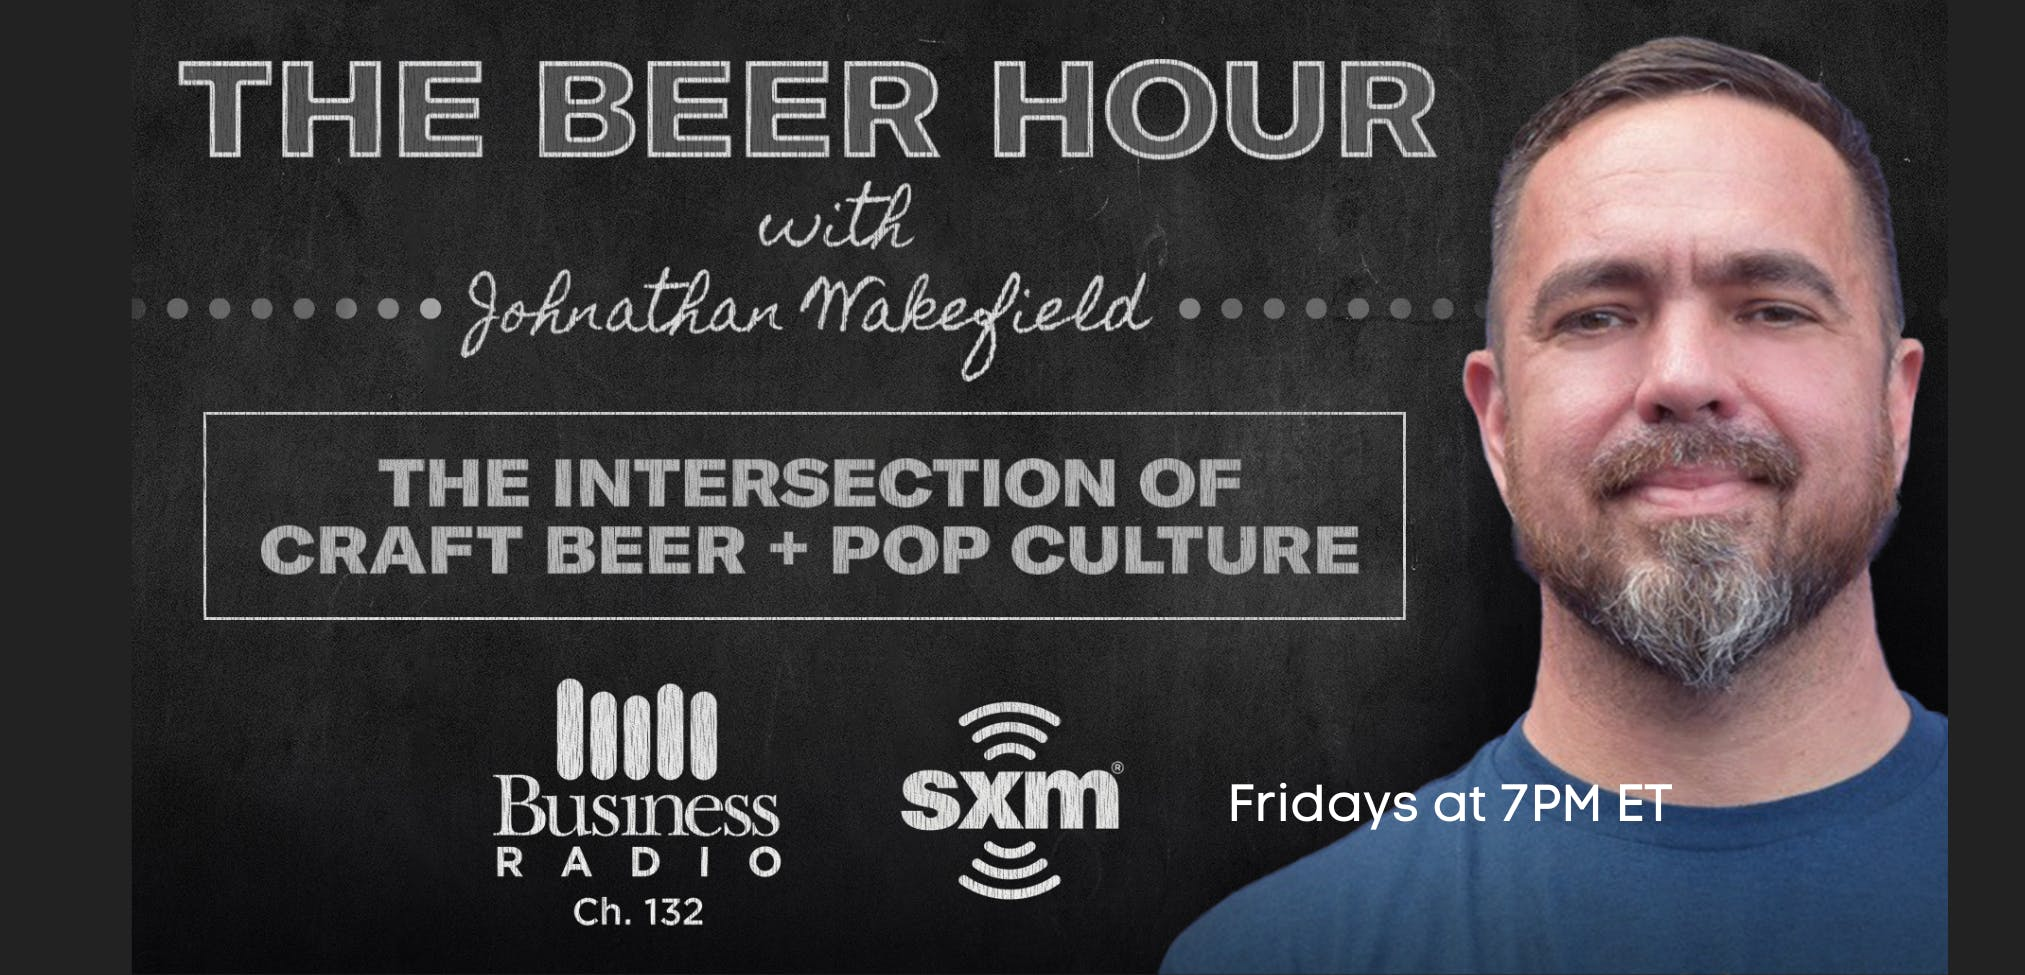 The Beer Hour Promo